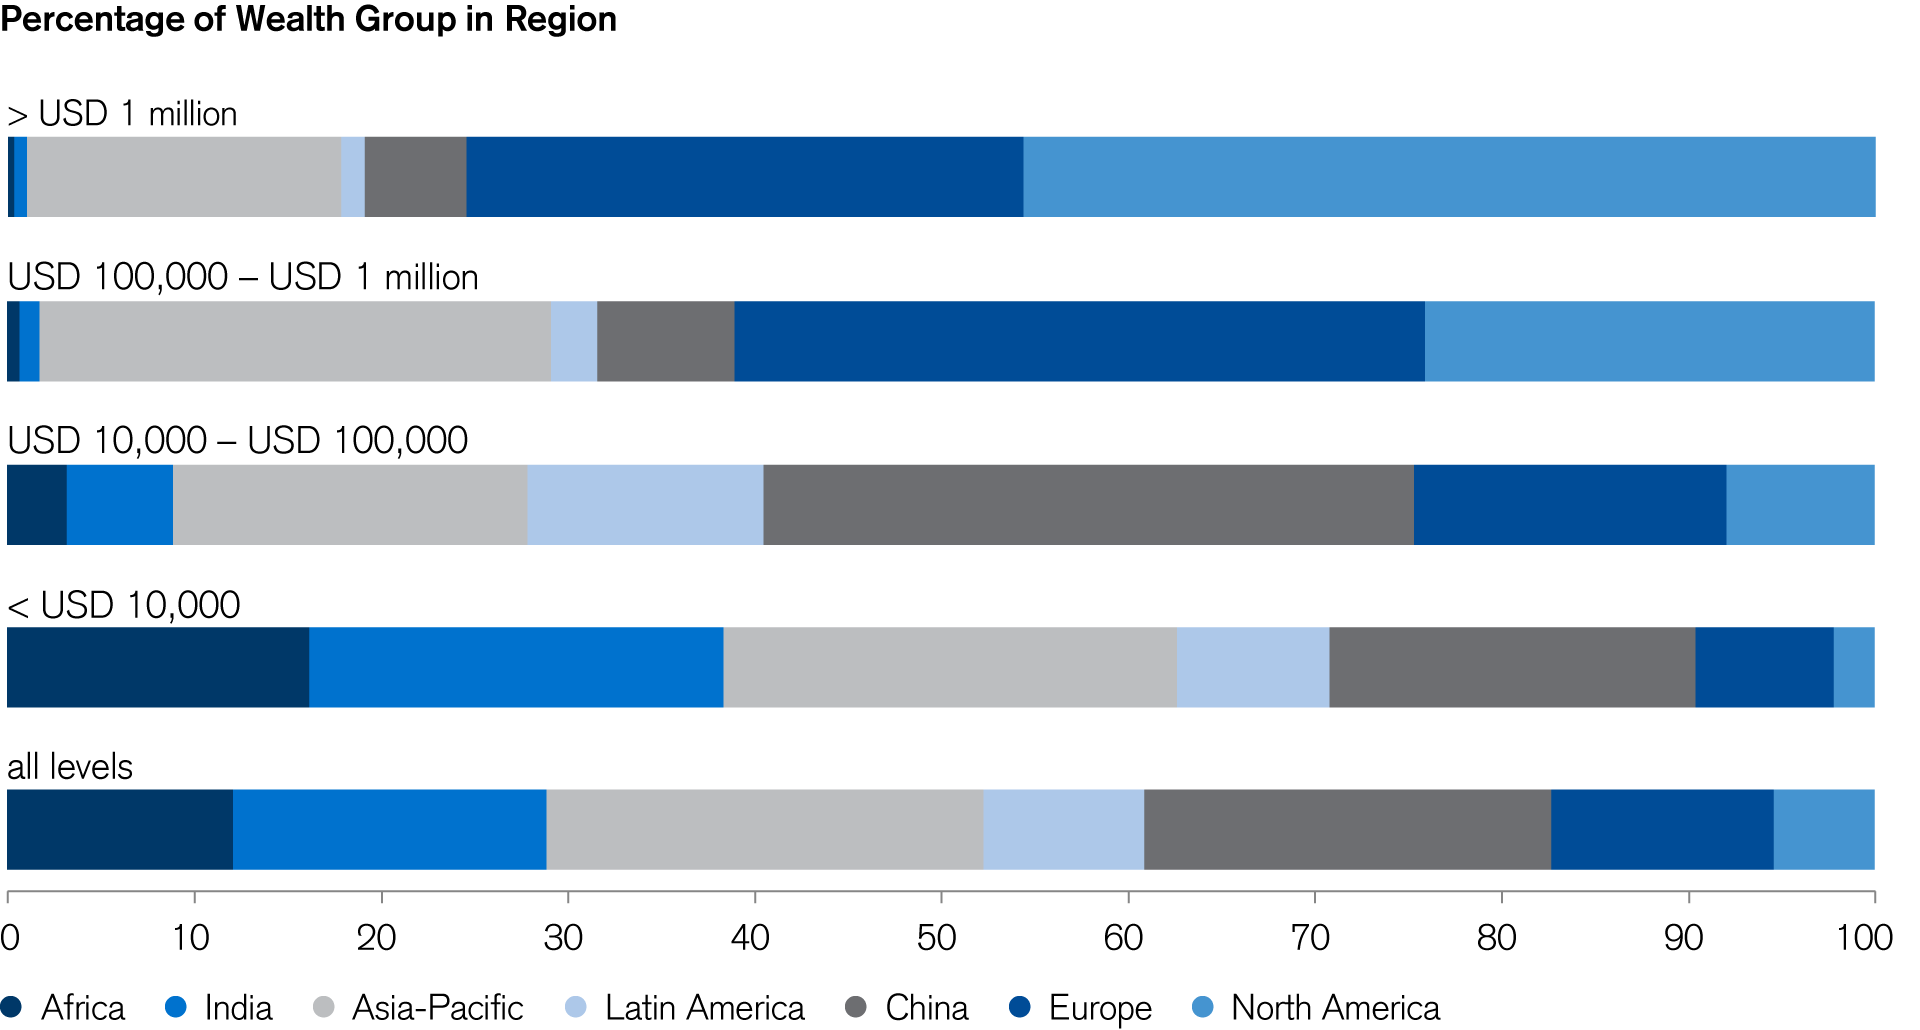 Regional Membership of Global Wealth Strata